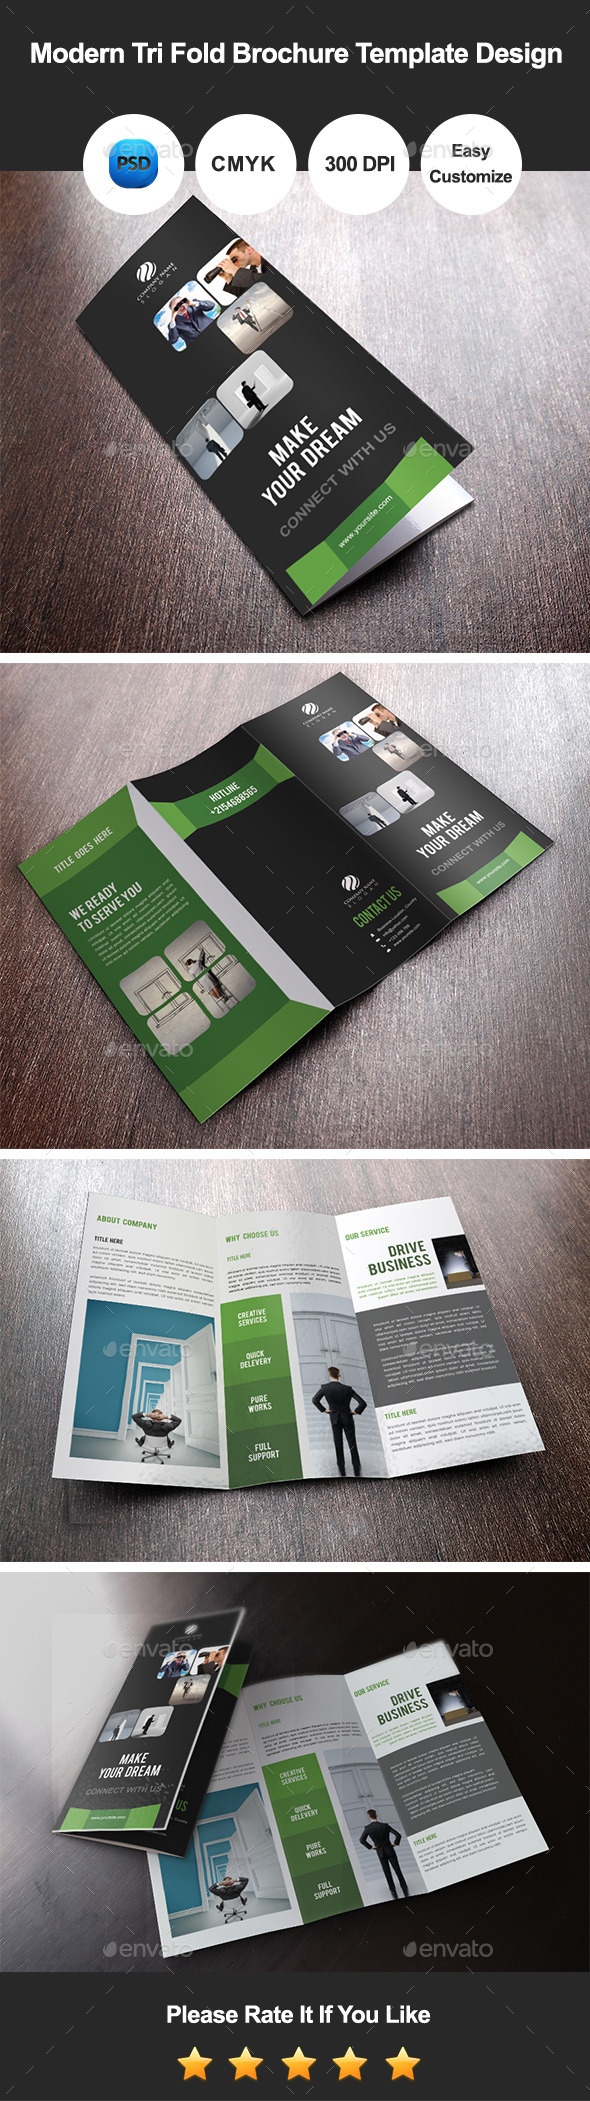 GraphicRiver Modern Tri Fold Brochure Template Design 11149703